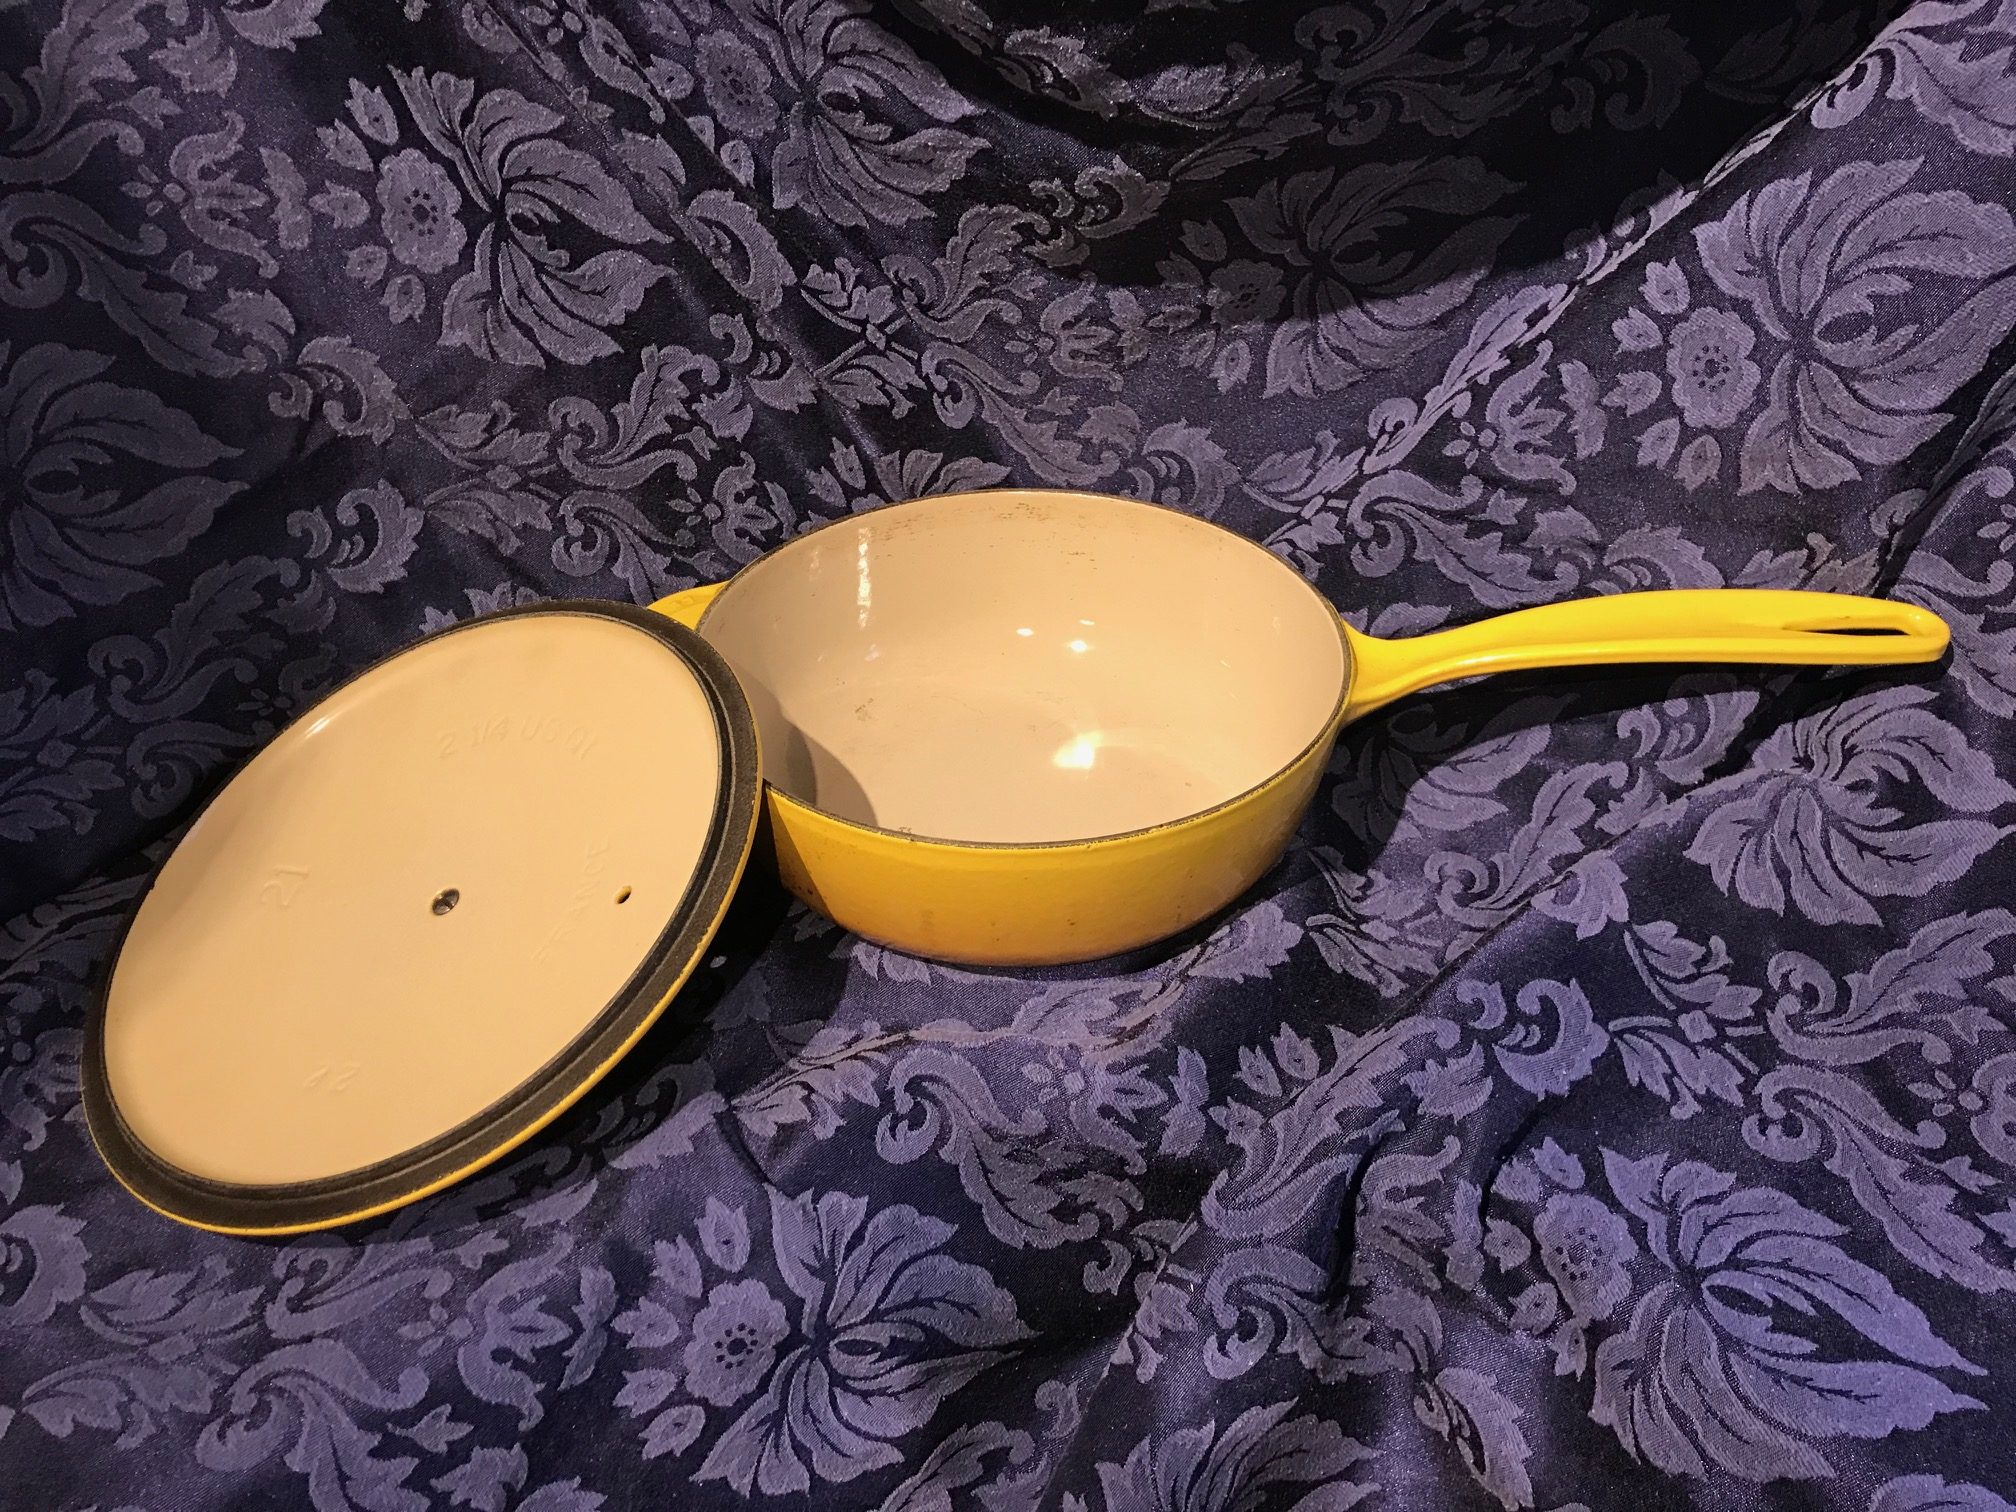 Made In France (c. 2013) Yellow Le Creuset Sauce Pan [#21]: 19,600 ppm Cadmium (a known carcinogen) + 48 ppm Lead.